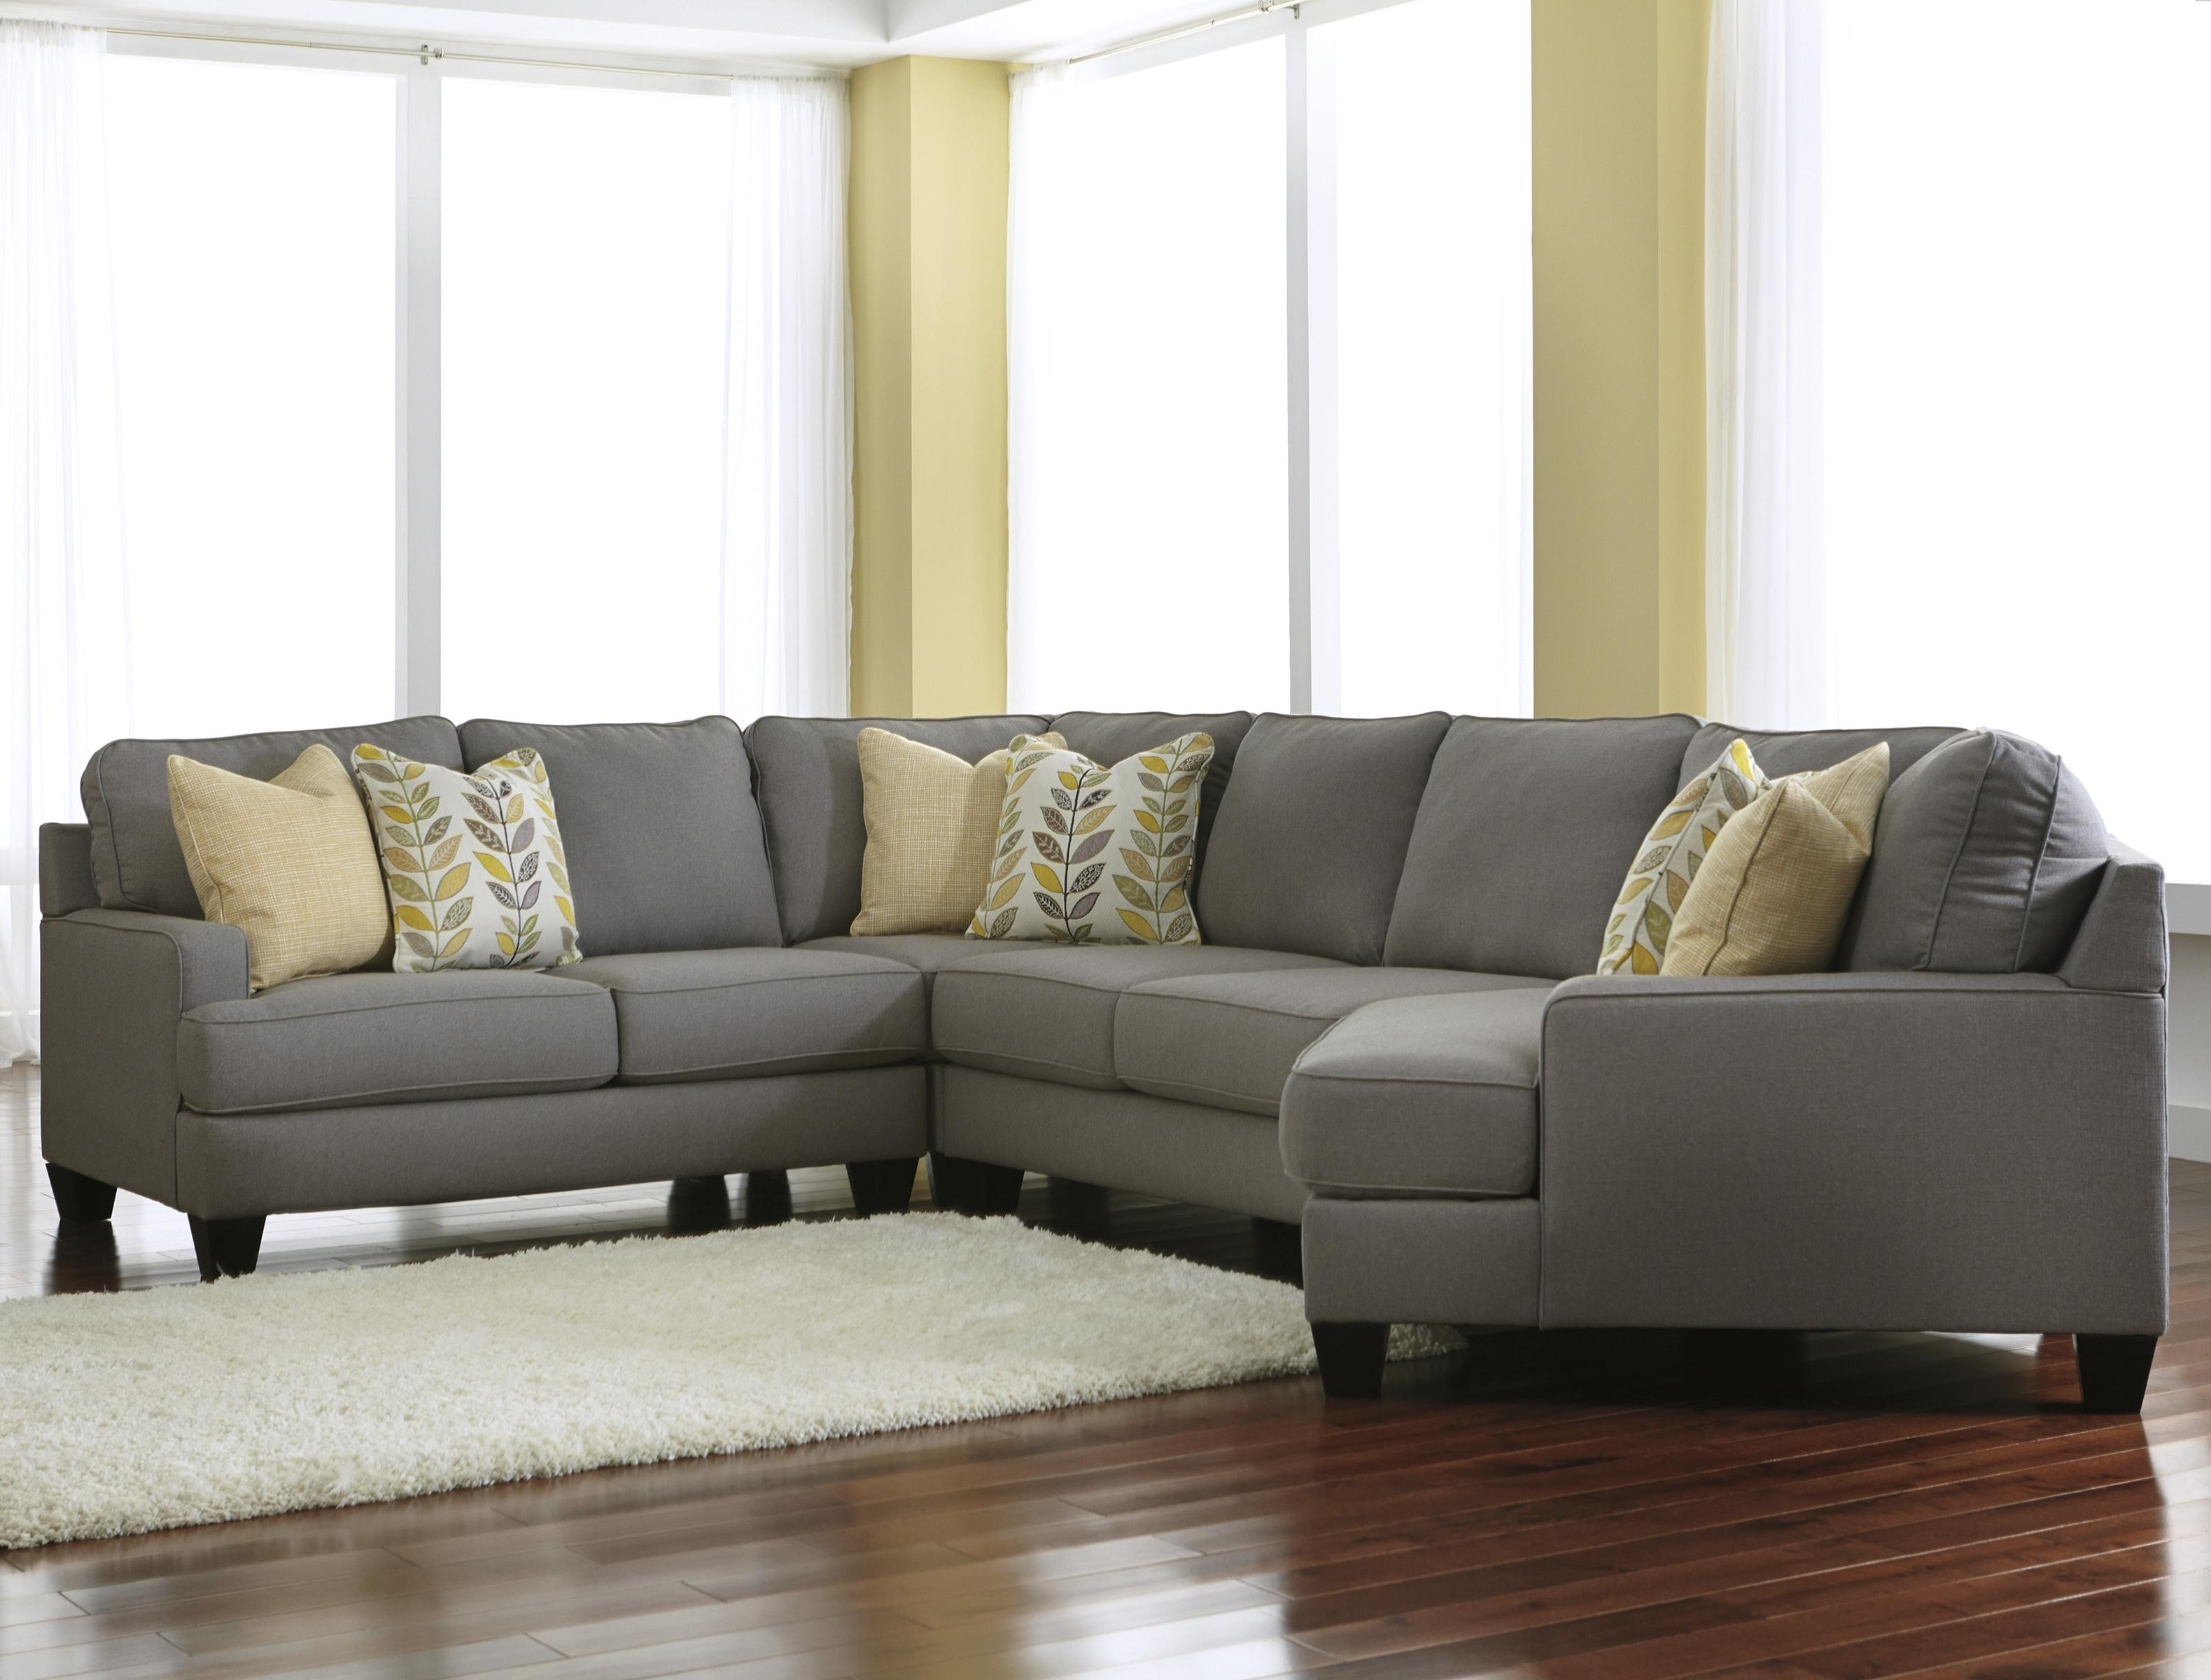 Trendy Signature Designashley Chamberly – Alloy Modern 4 Piece Throughout Cuddler Sectional Sofas (View 18 of 20)